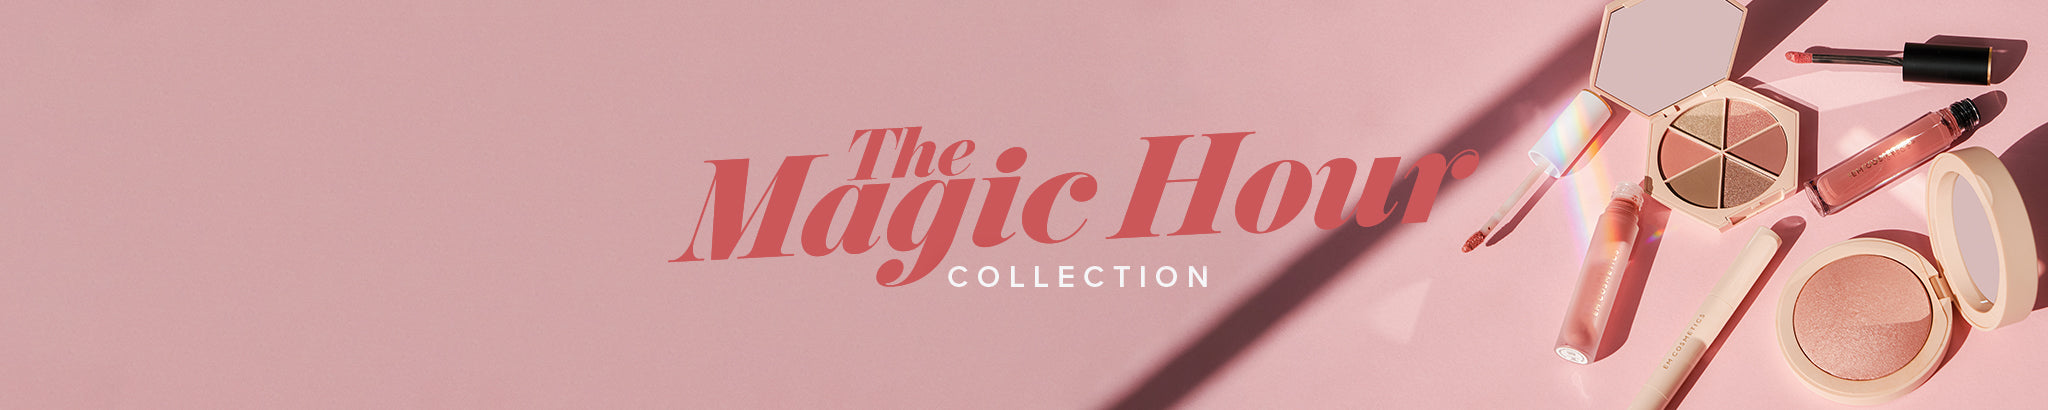 The Magic Hour Collection